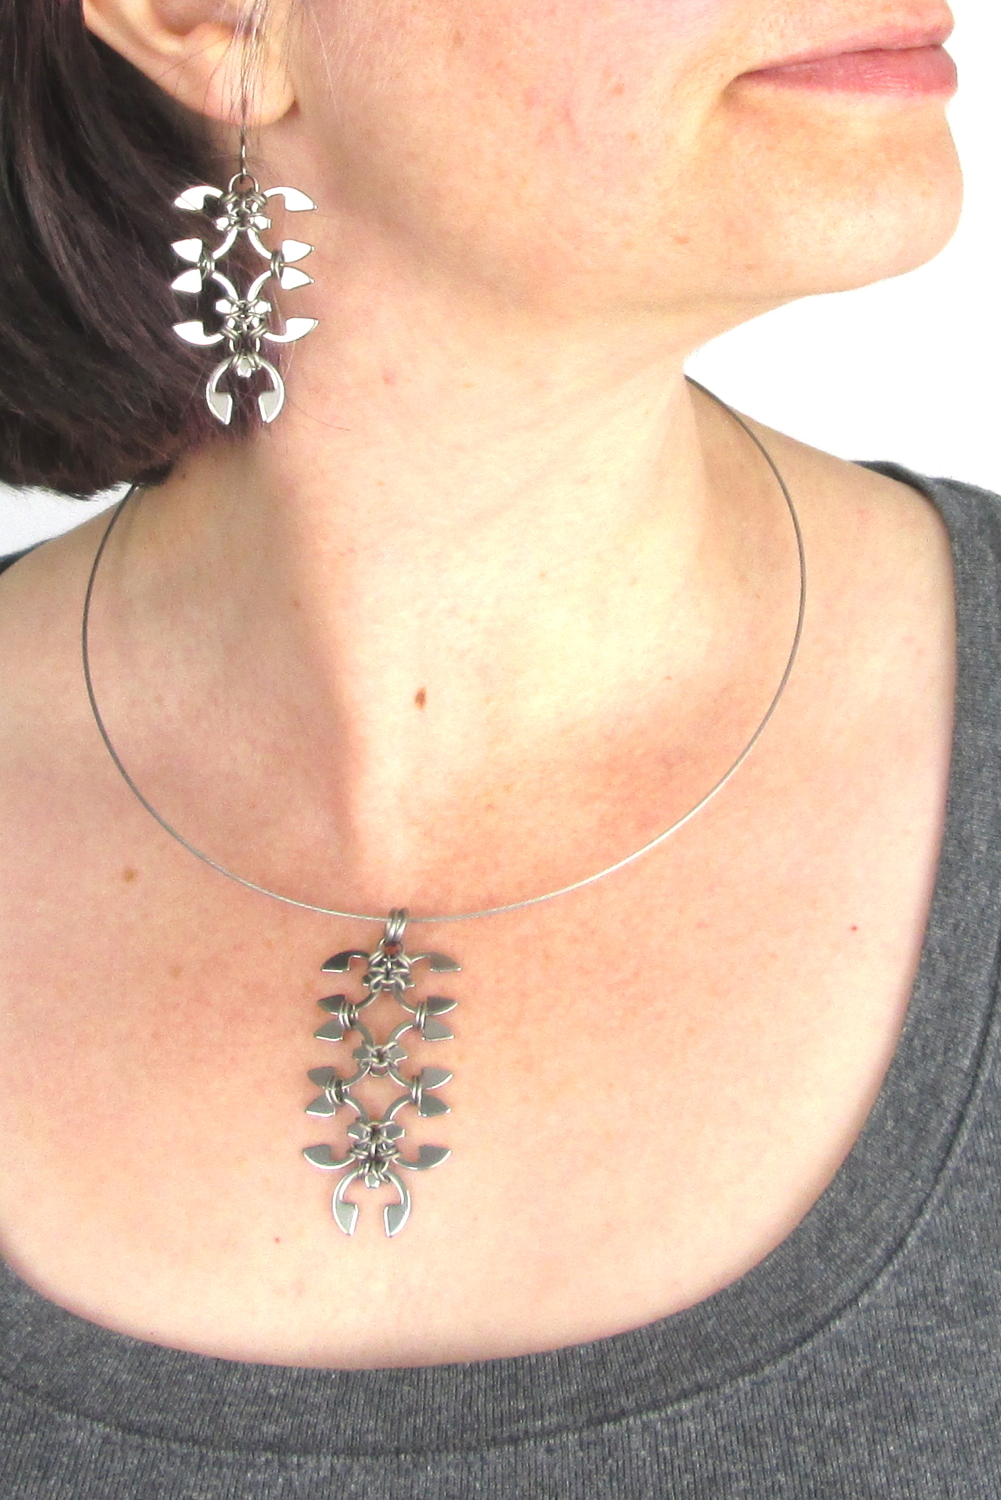 Close cropped modeled image of Wraptillion's Short Wisteria Earrings and Wisteria pendant, with a scoop neck gray tee.